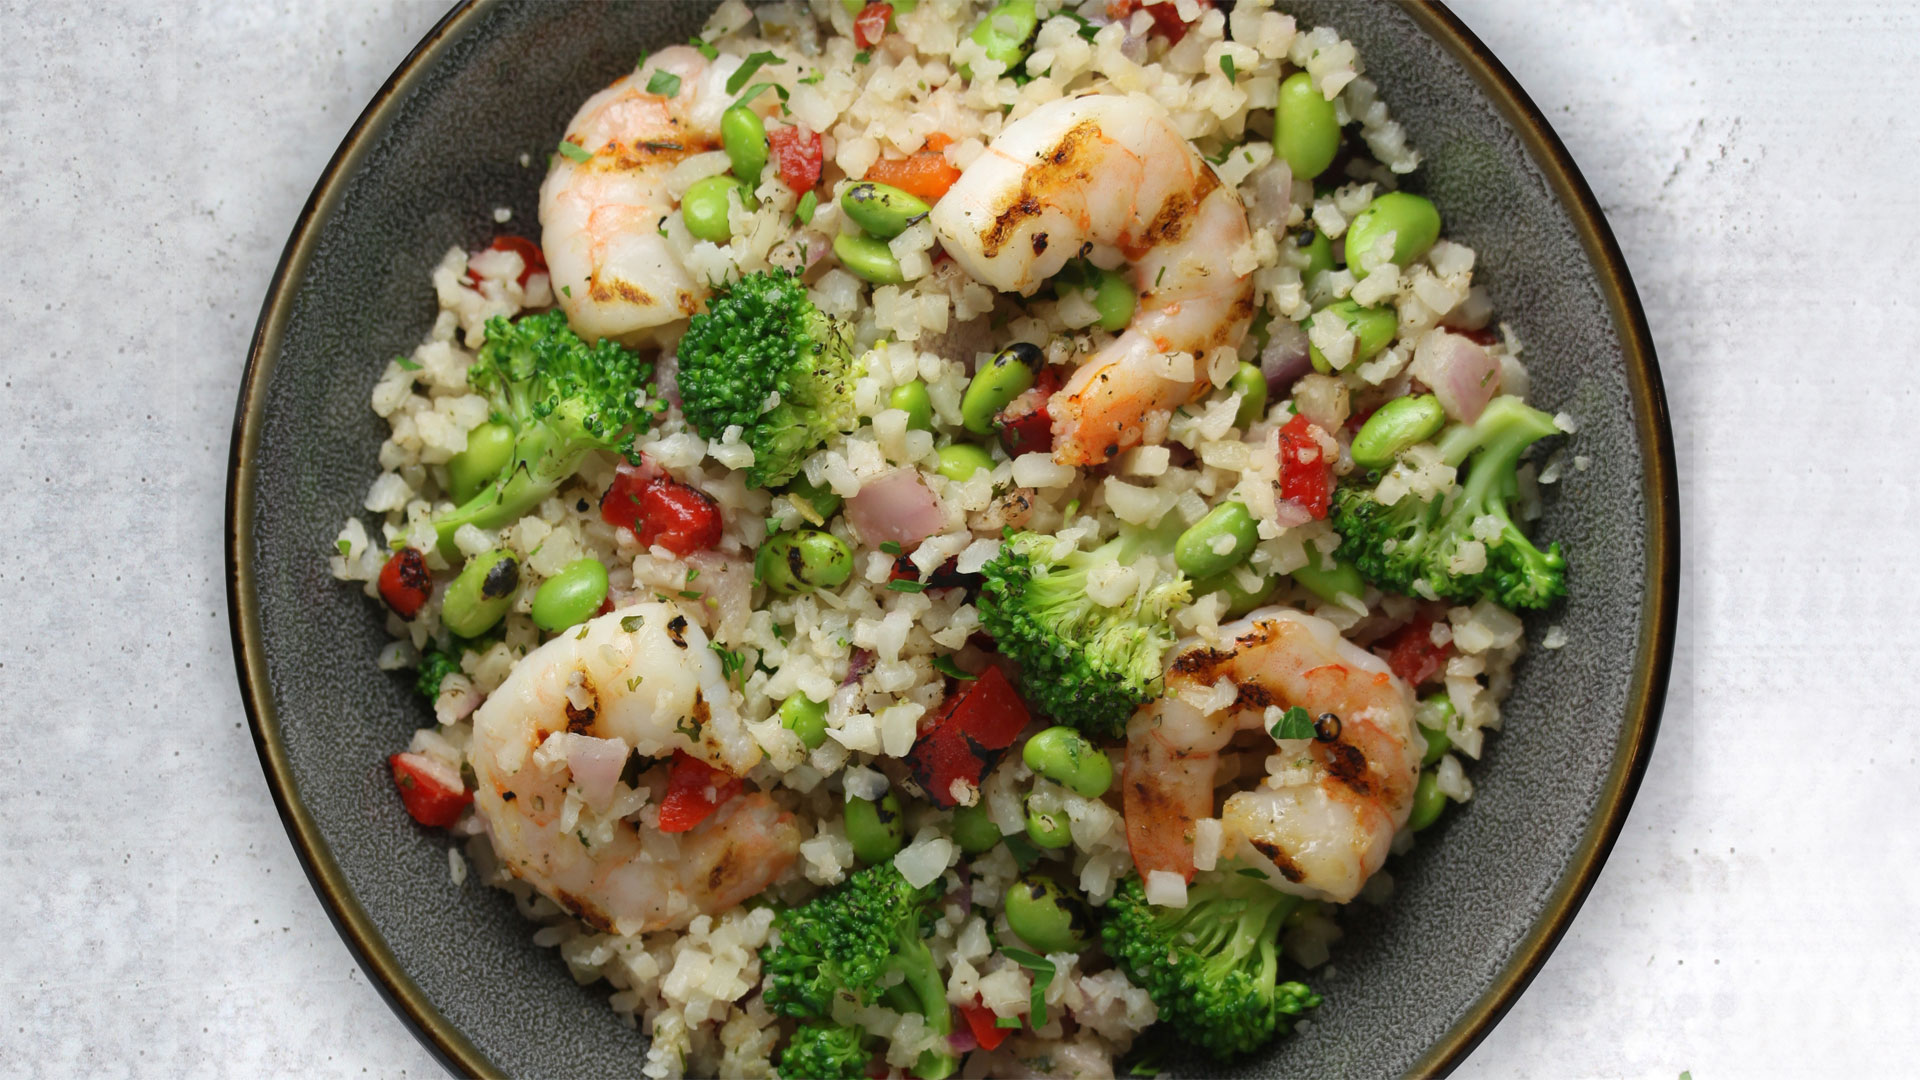 Featuring Haliburton Sesame Citrus Riced Cauliflower, Fire Roasted Red Bell Pepper, Red Onion, Mukimame, Broccoli and Grilled Shrimp.